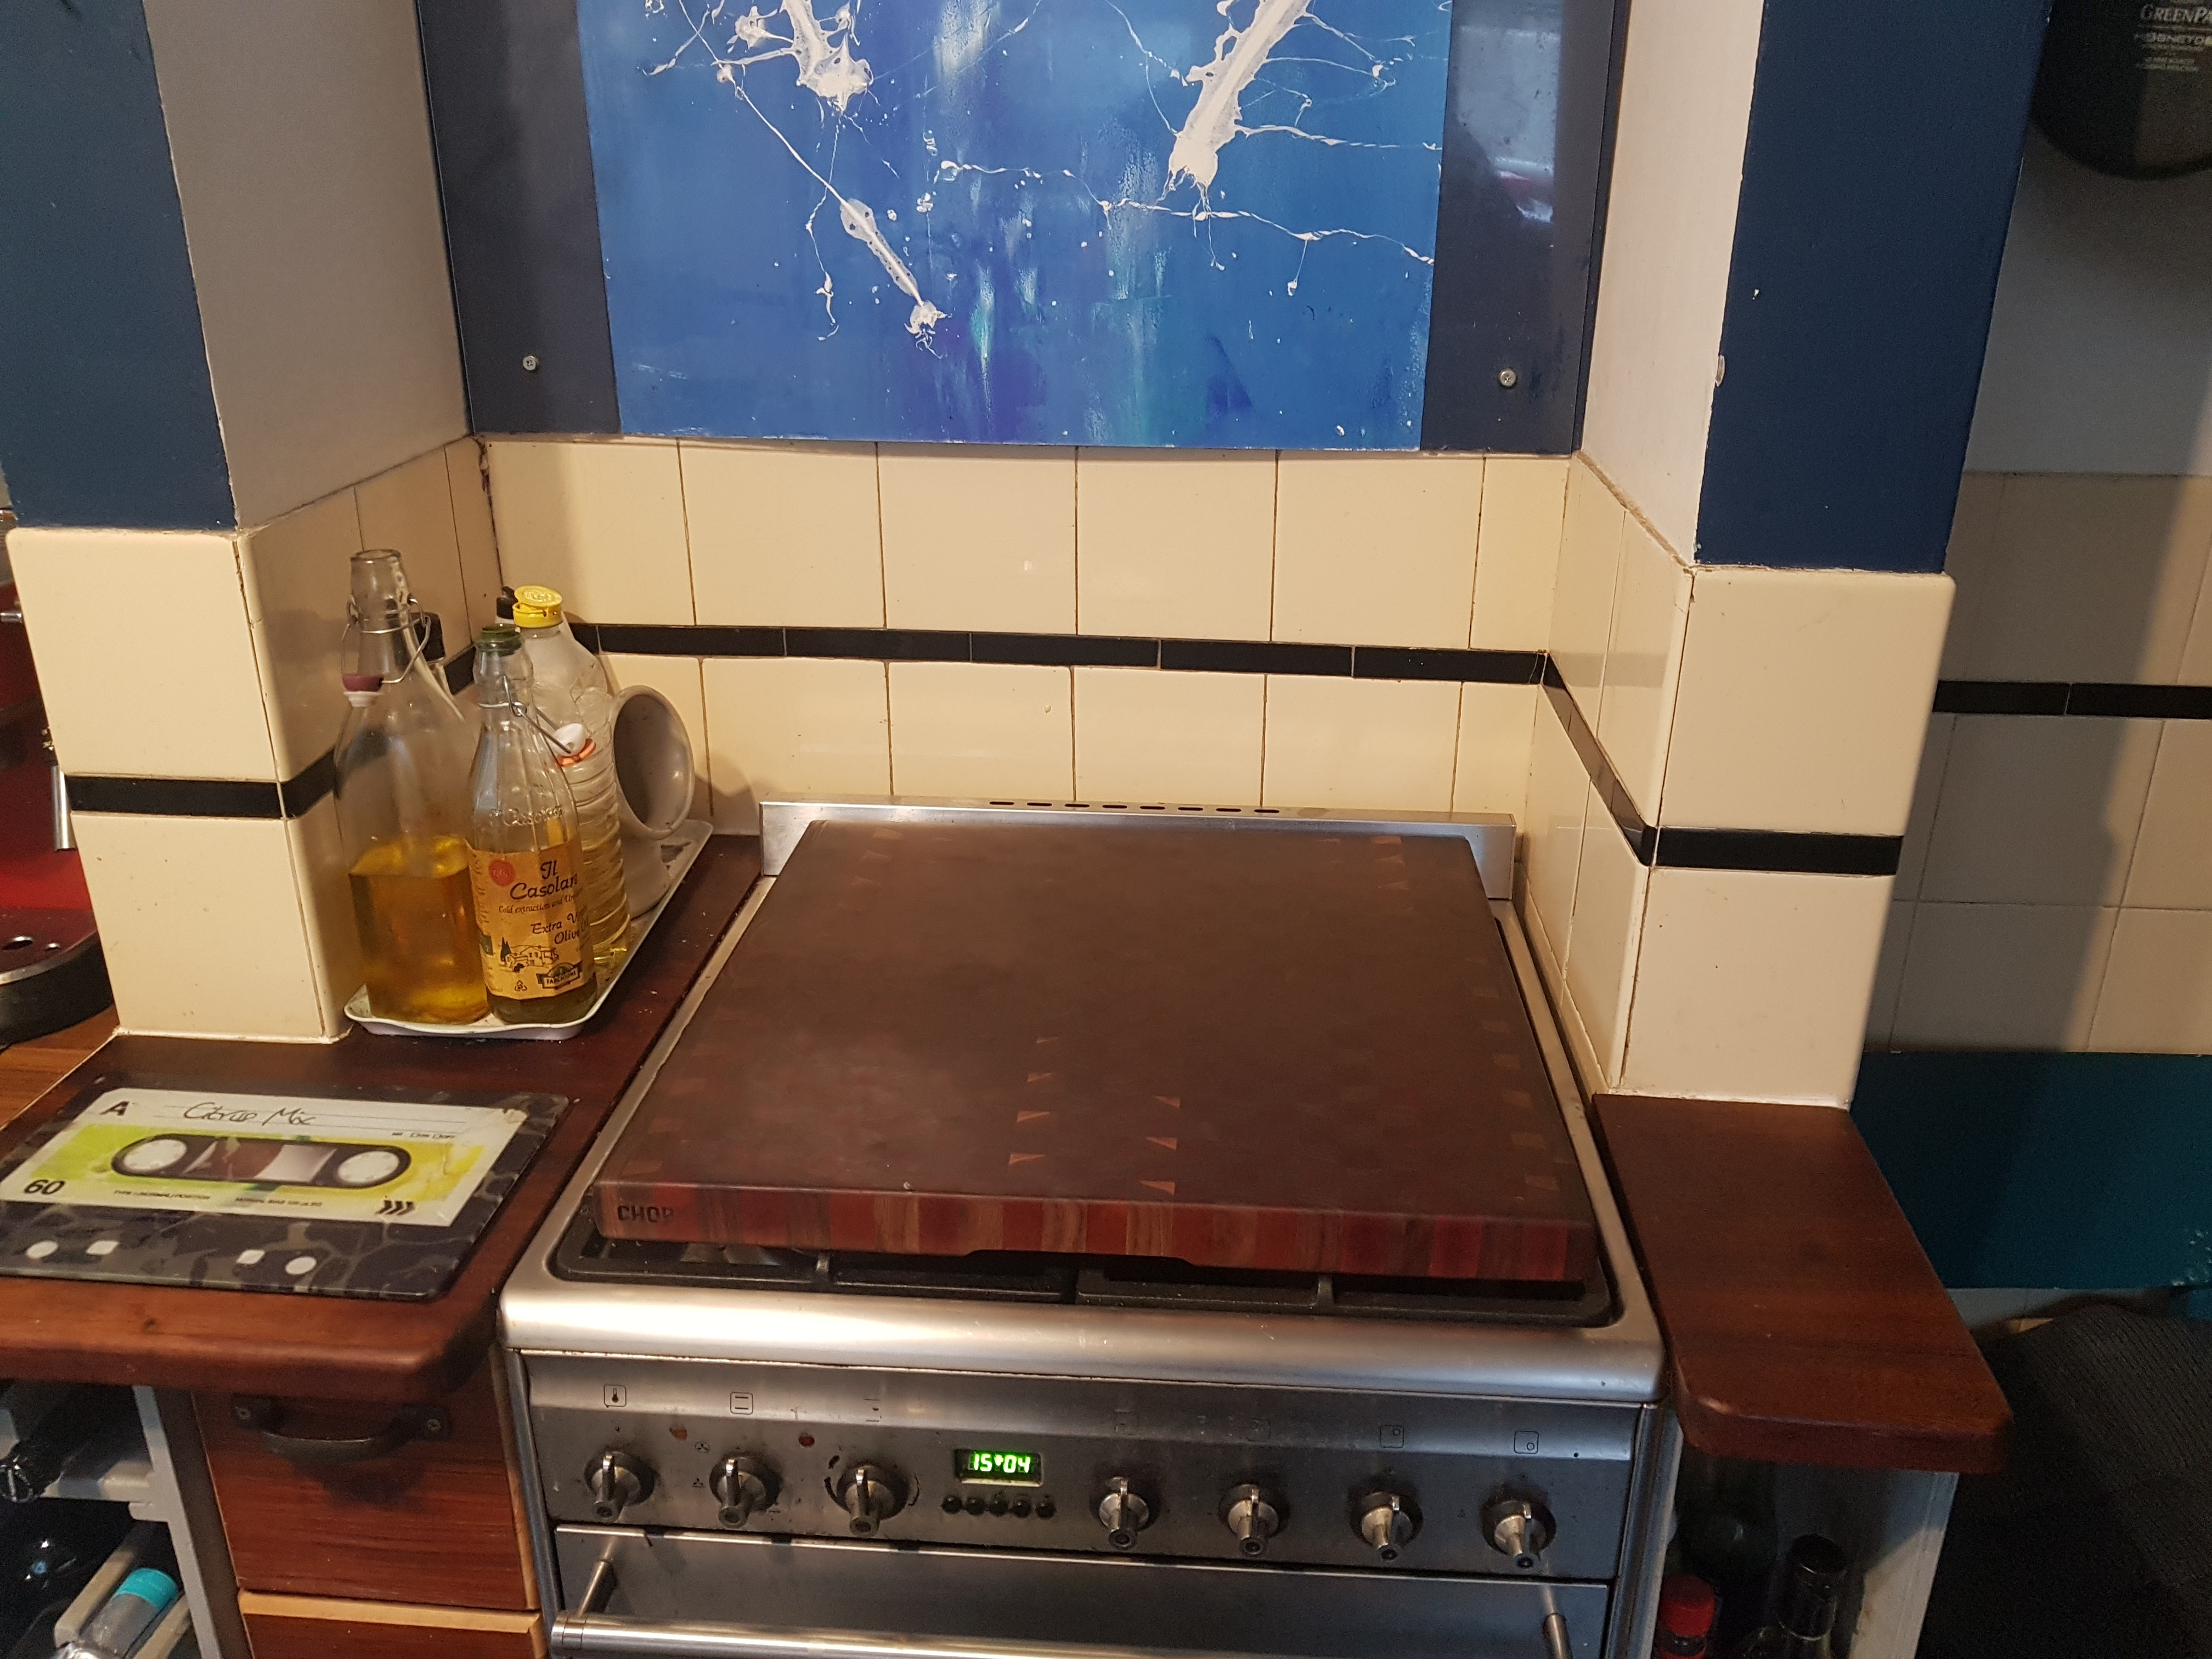 Large chequered counter top